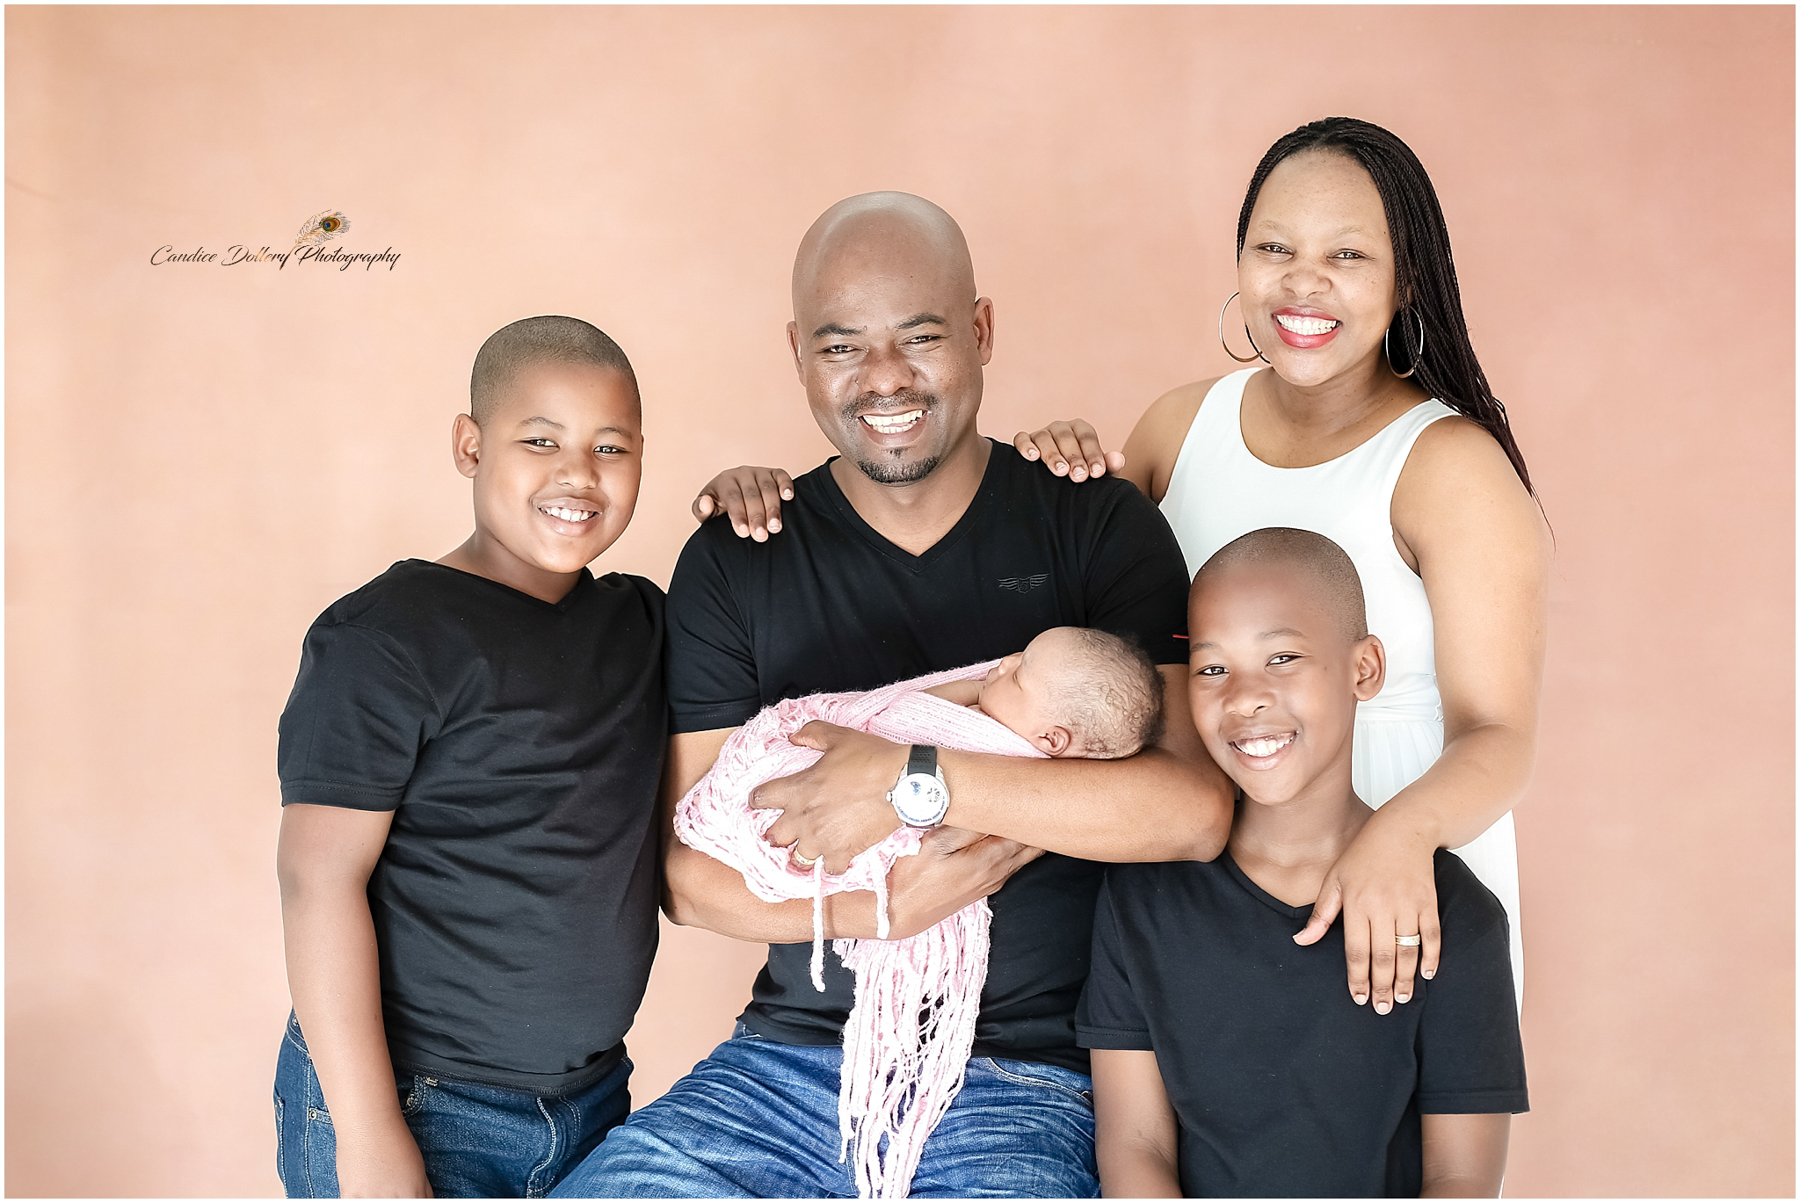 Mbeka's family - Candice Dollery_1495